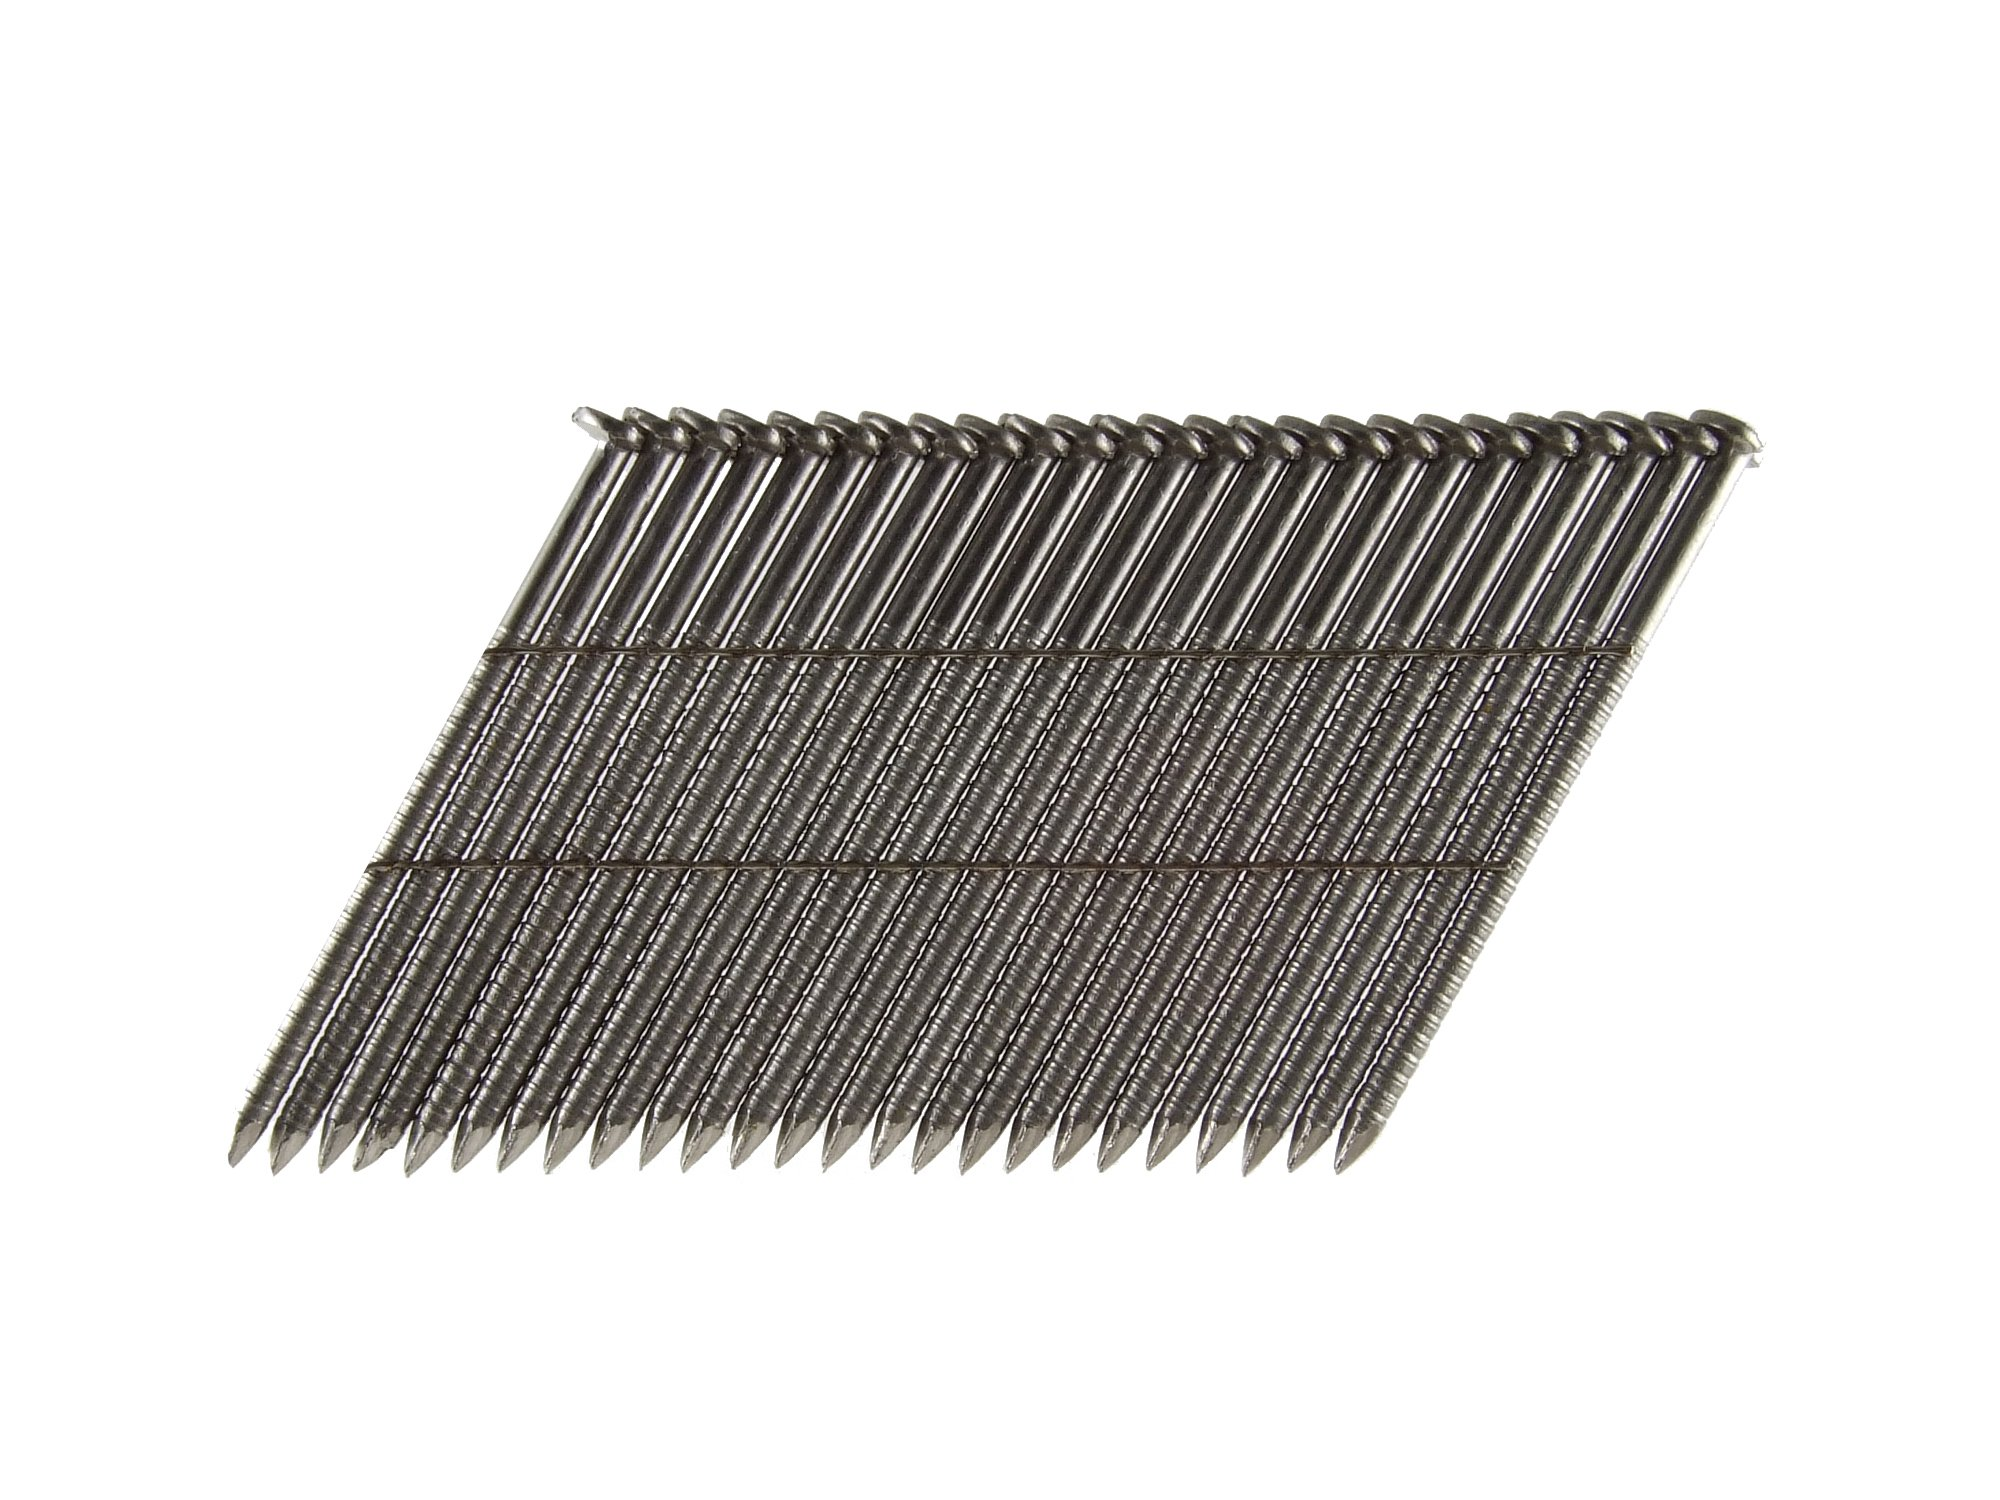 B&C Eagle 314X120RSS/28 Offset Round Head 3-1/4-Inch x .120 x 28 Degree S304 Stainless Steel Ring Shank Wire Collated Framing Nails (1,000 per box)